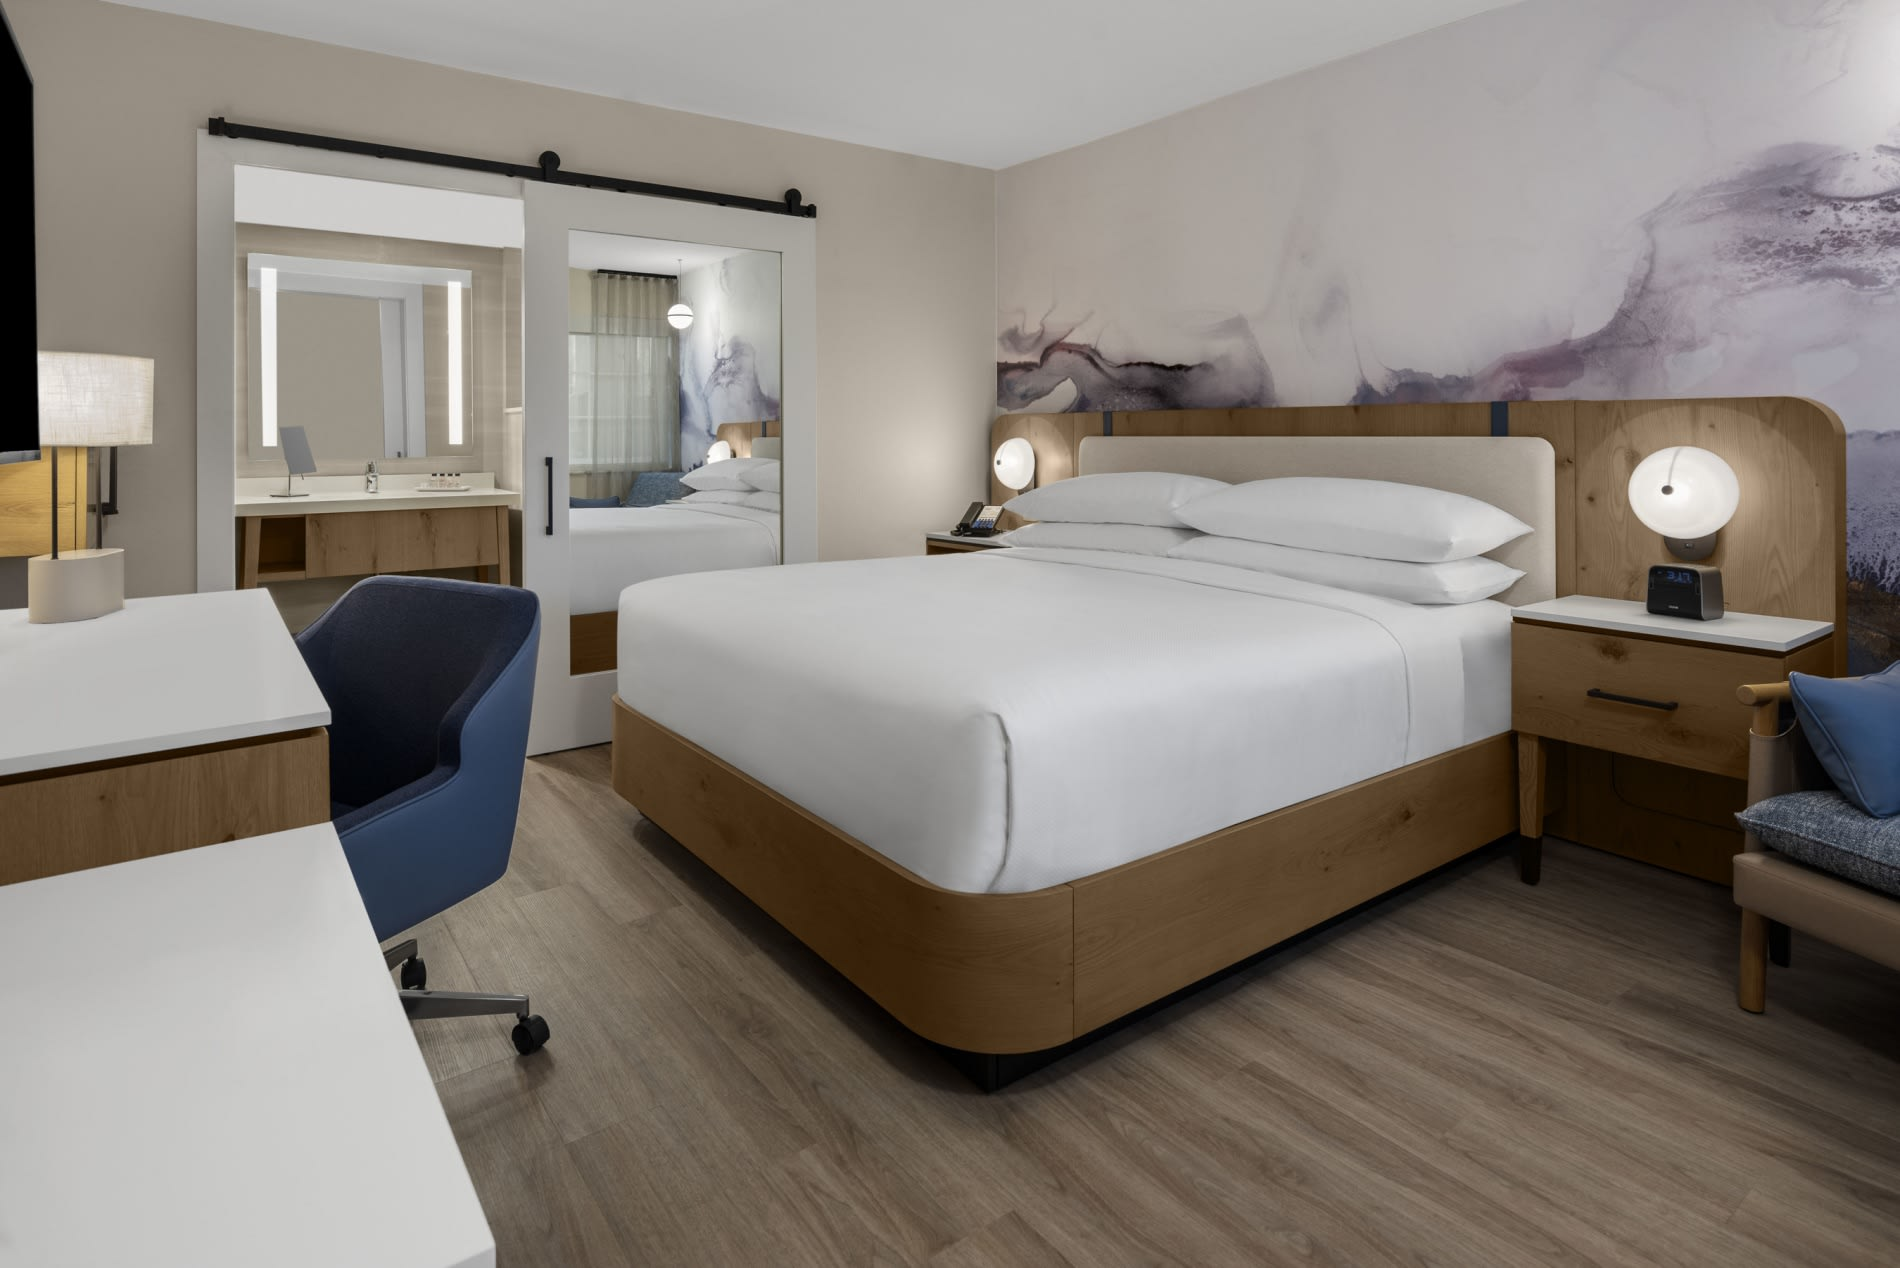 Delta Hotels by Marriott debuts sophisticated new room design